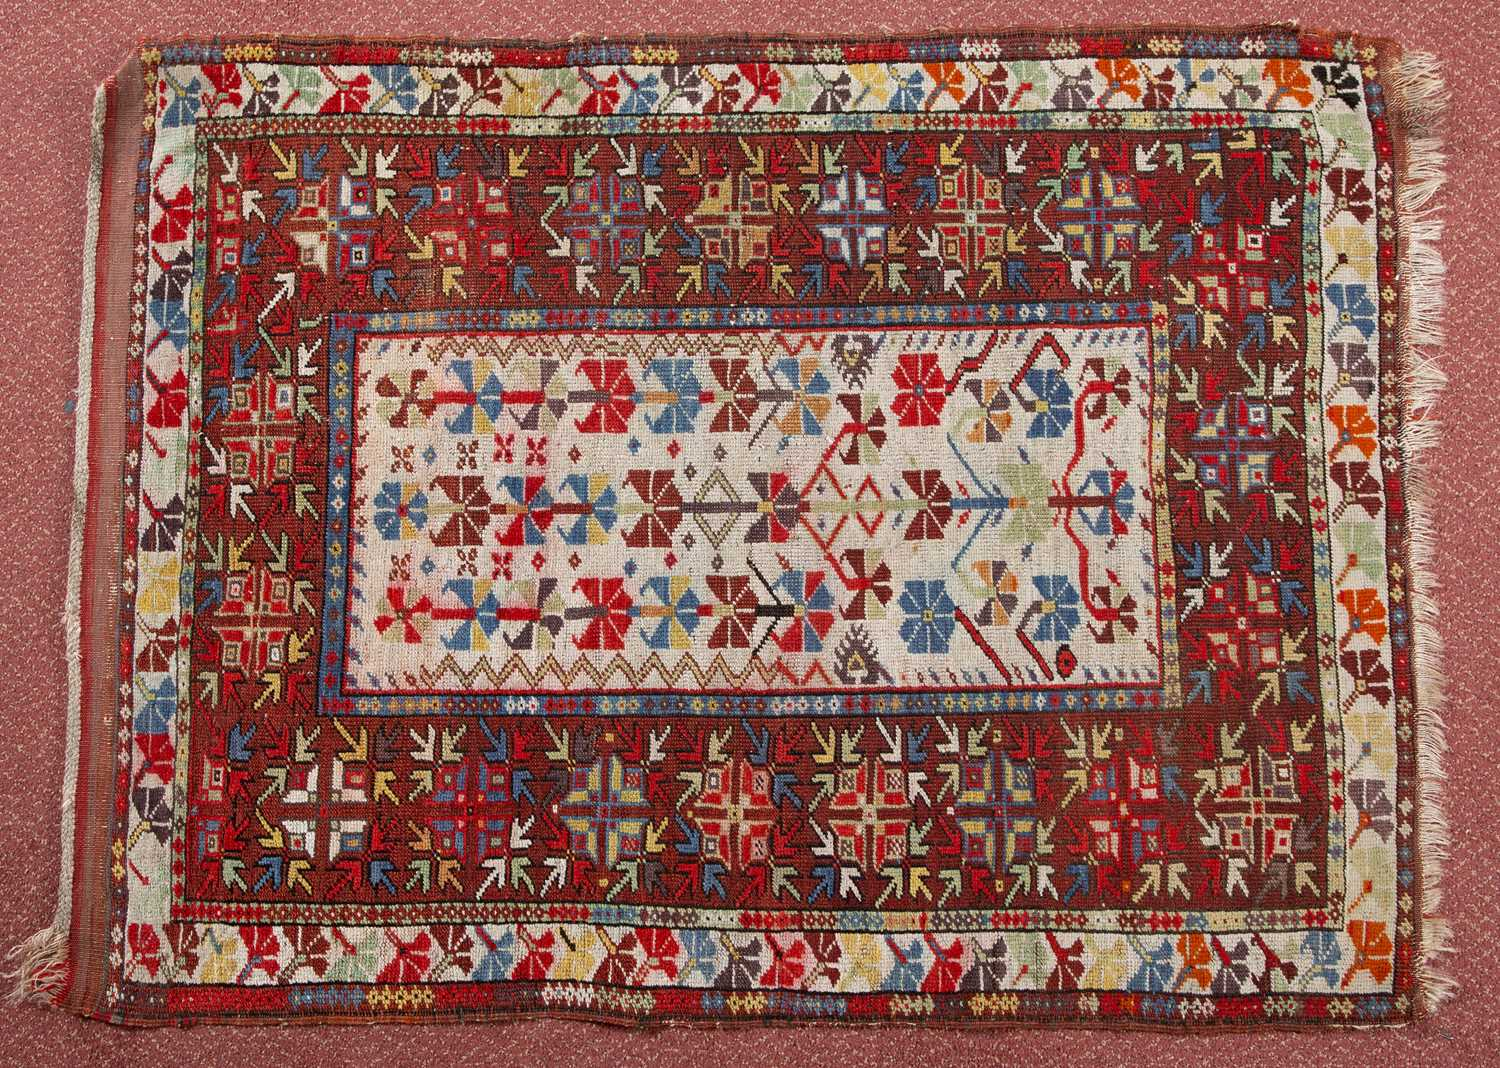 A Turkish Milas rug with a multi-coloured complex geometric design on a red and white ground, 120